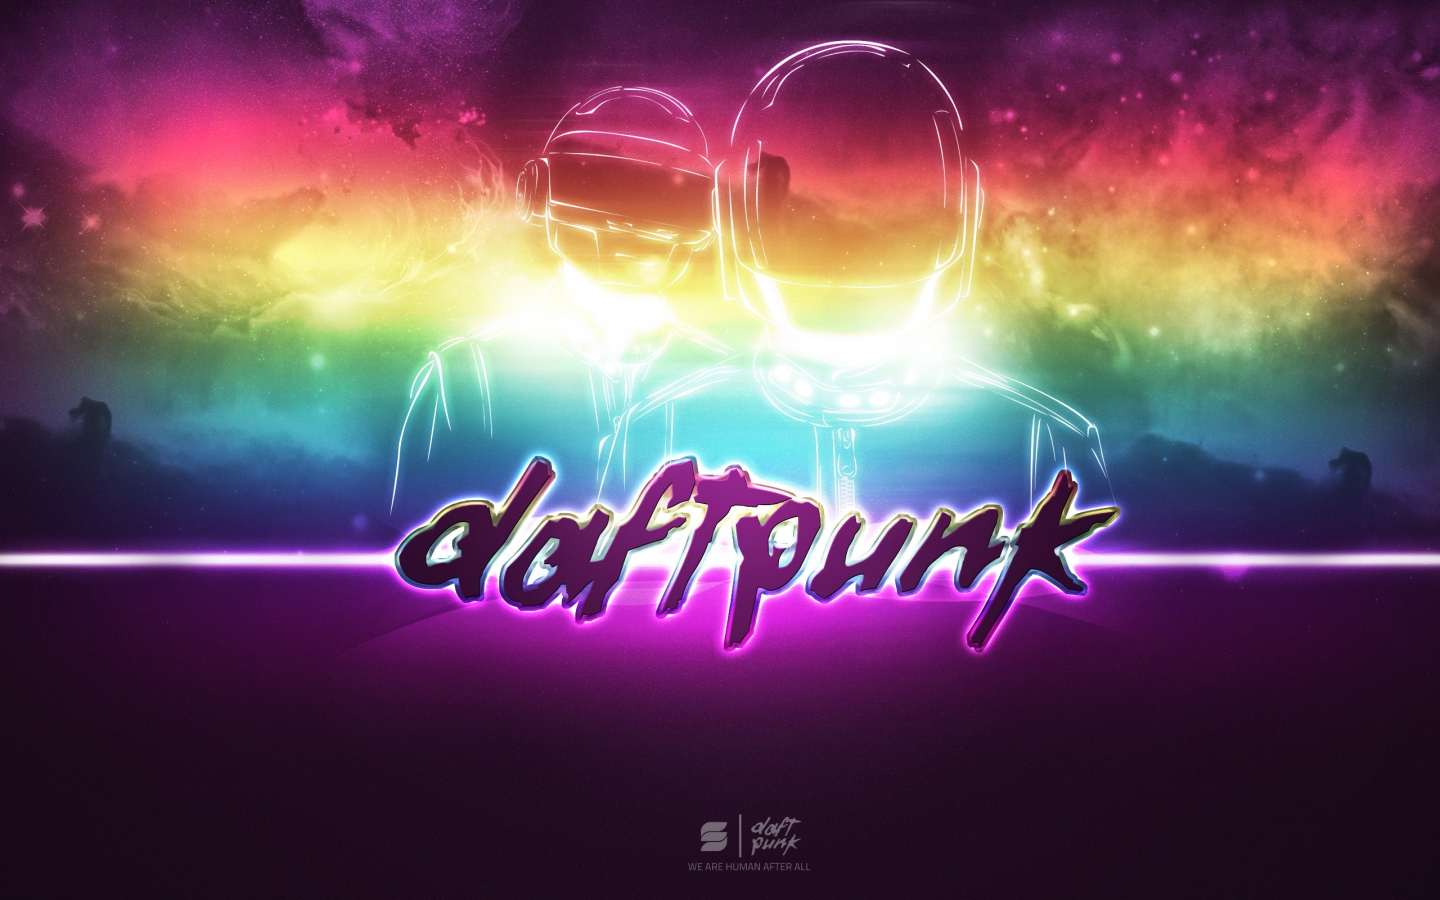 Papel de parede daft punk wallpaper para download no for Imagenes para wallpaper